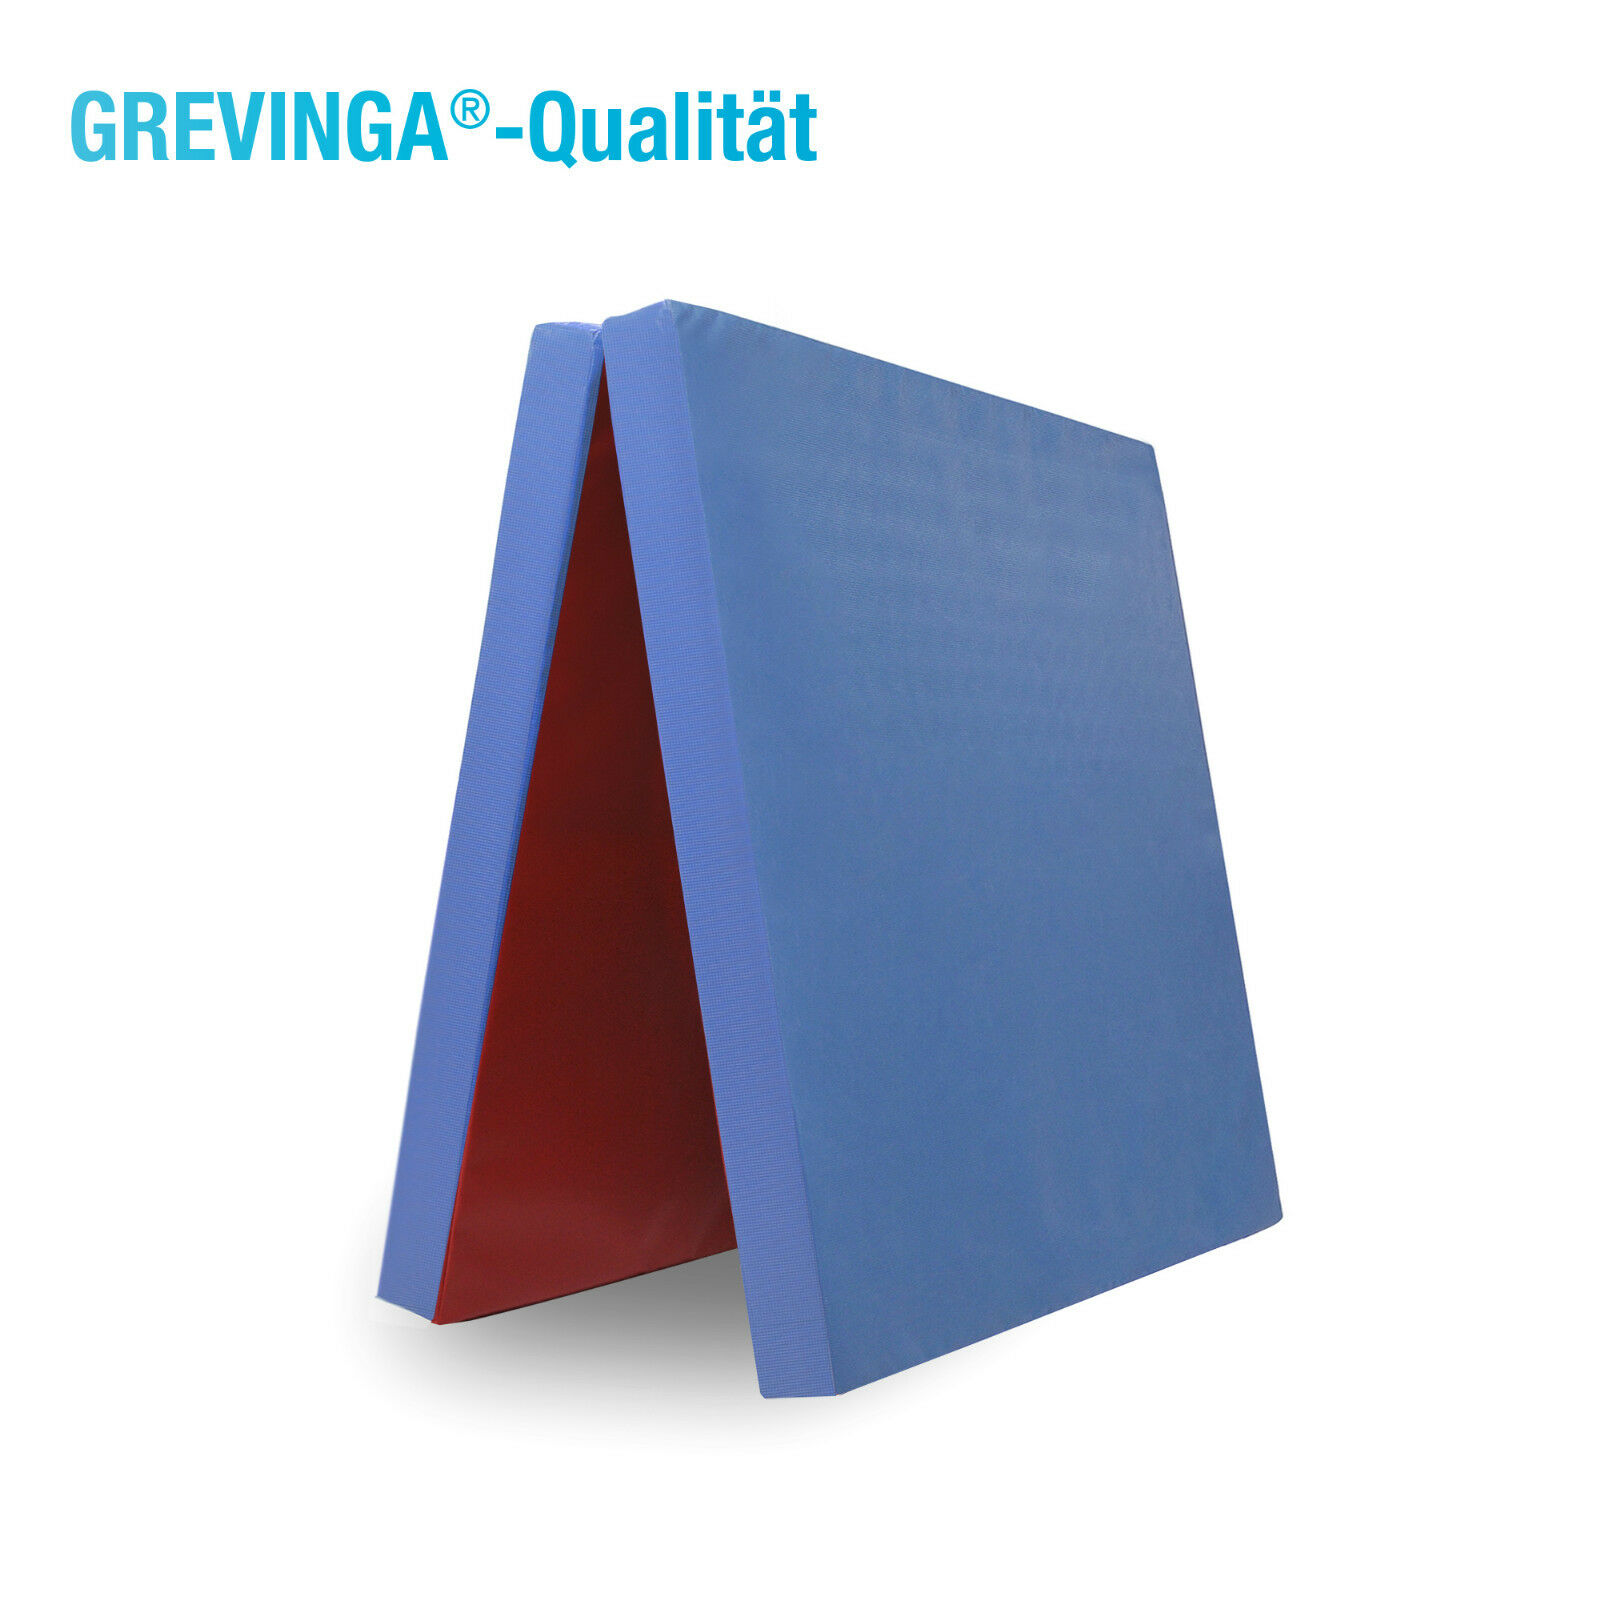 Grevinga ® Joblot Folding Gym Mat approx 200 x 100 x 6 Cm in rot-RG 35